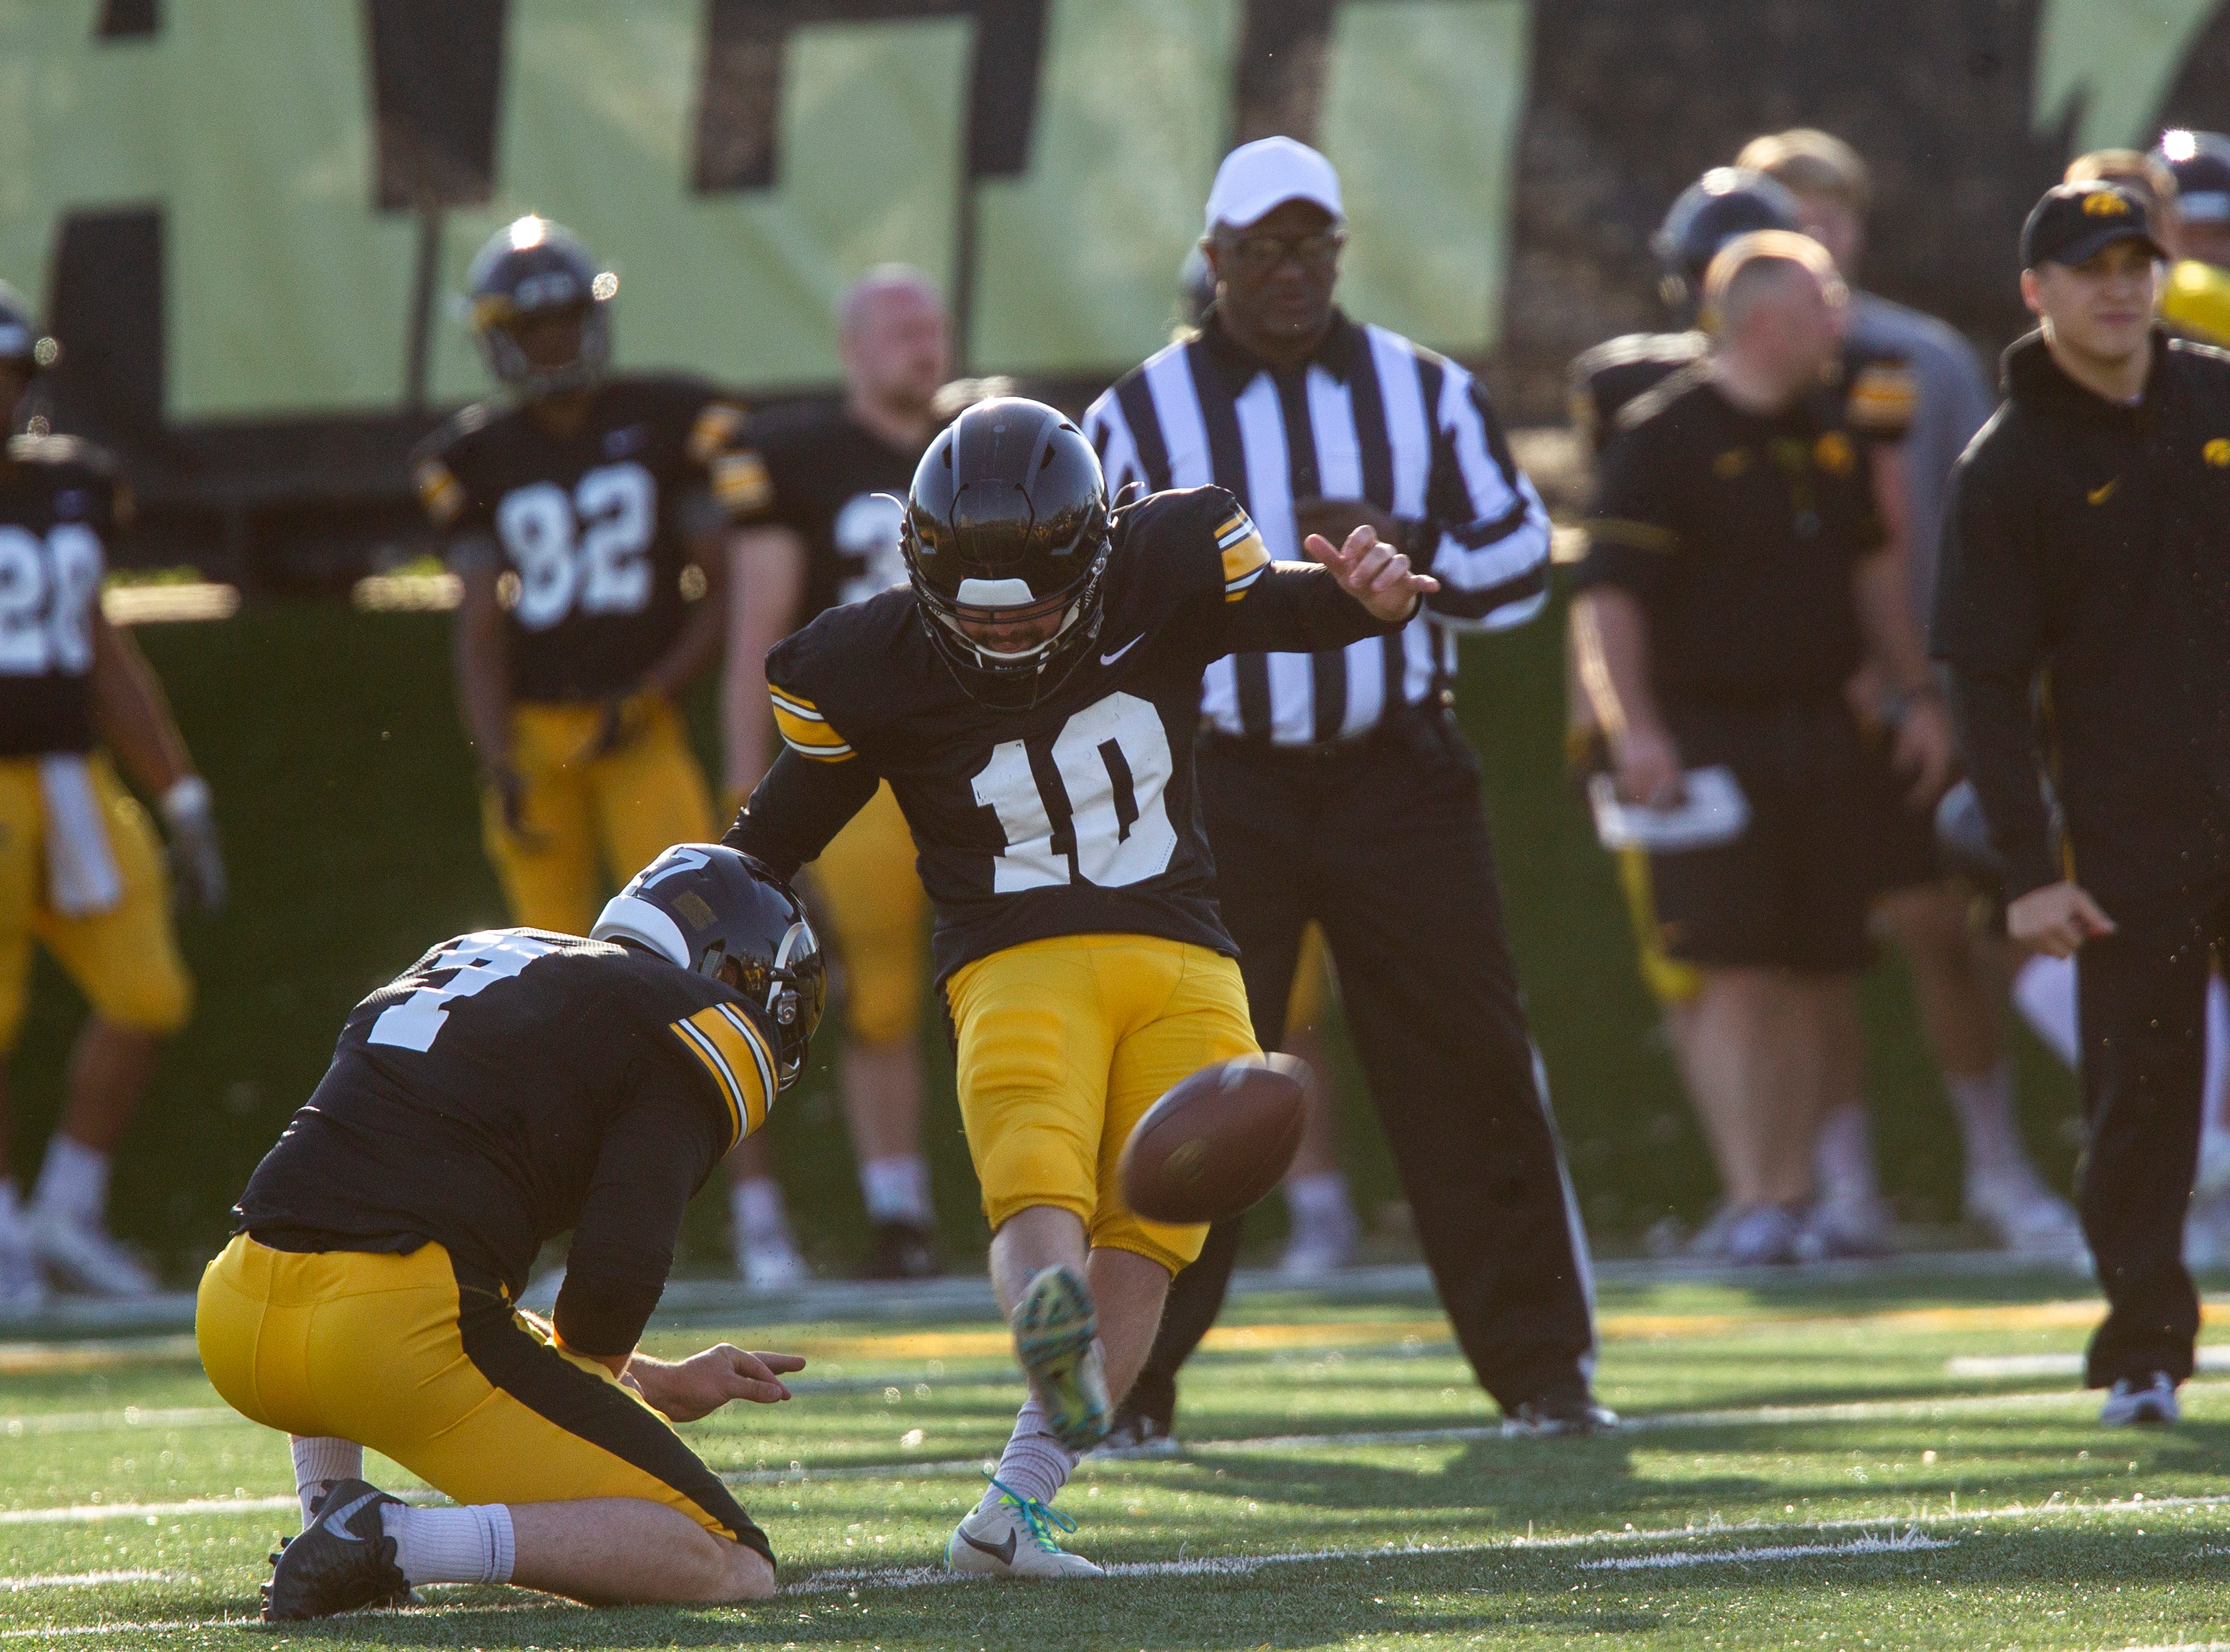 Iowa placekicker Caleb Shudak attempts a field goal during the final spring football practice, Friday, April 26, 2019, at the University of Iowa outdoor practice facility in Iowa City, Iowa.